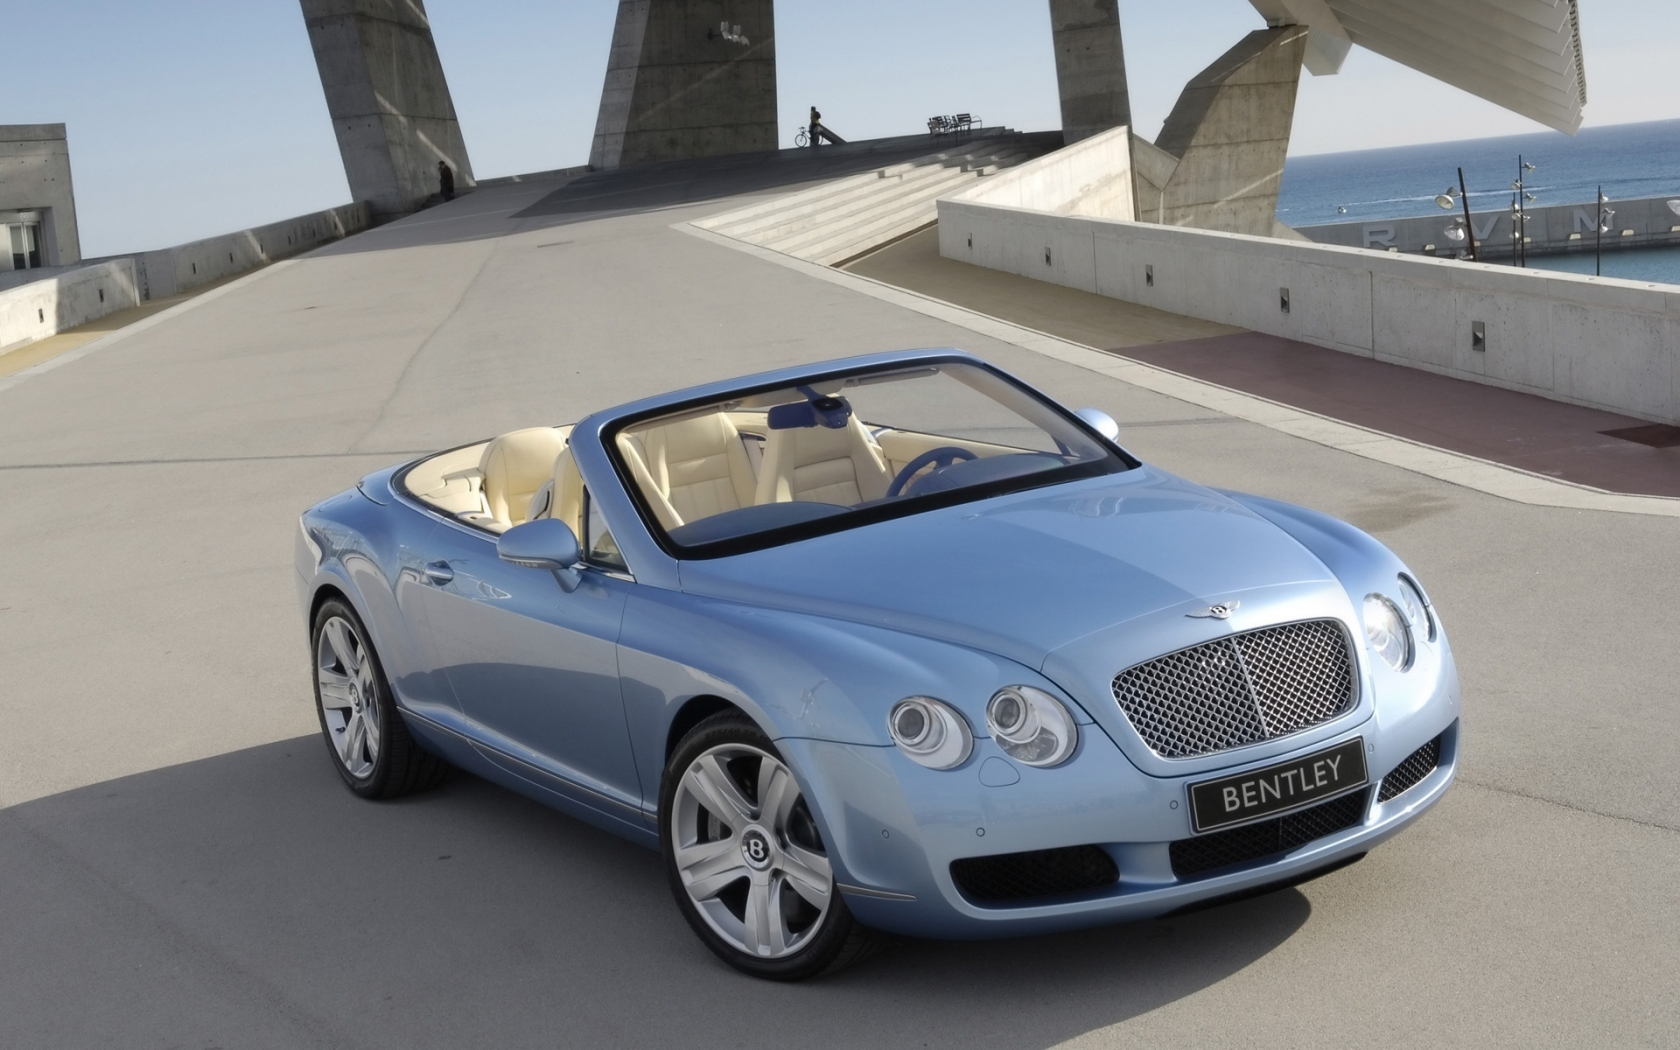 Bentley Continental GTC 2007 for 1680 x 1050 widescreen resolution